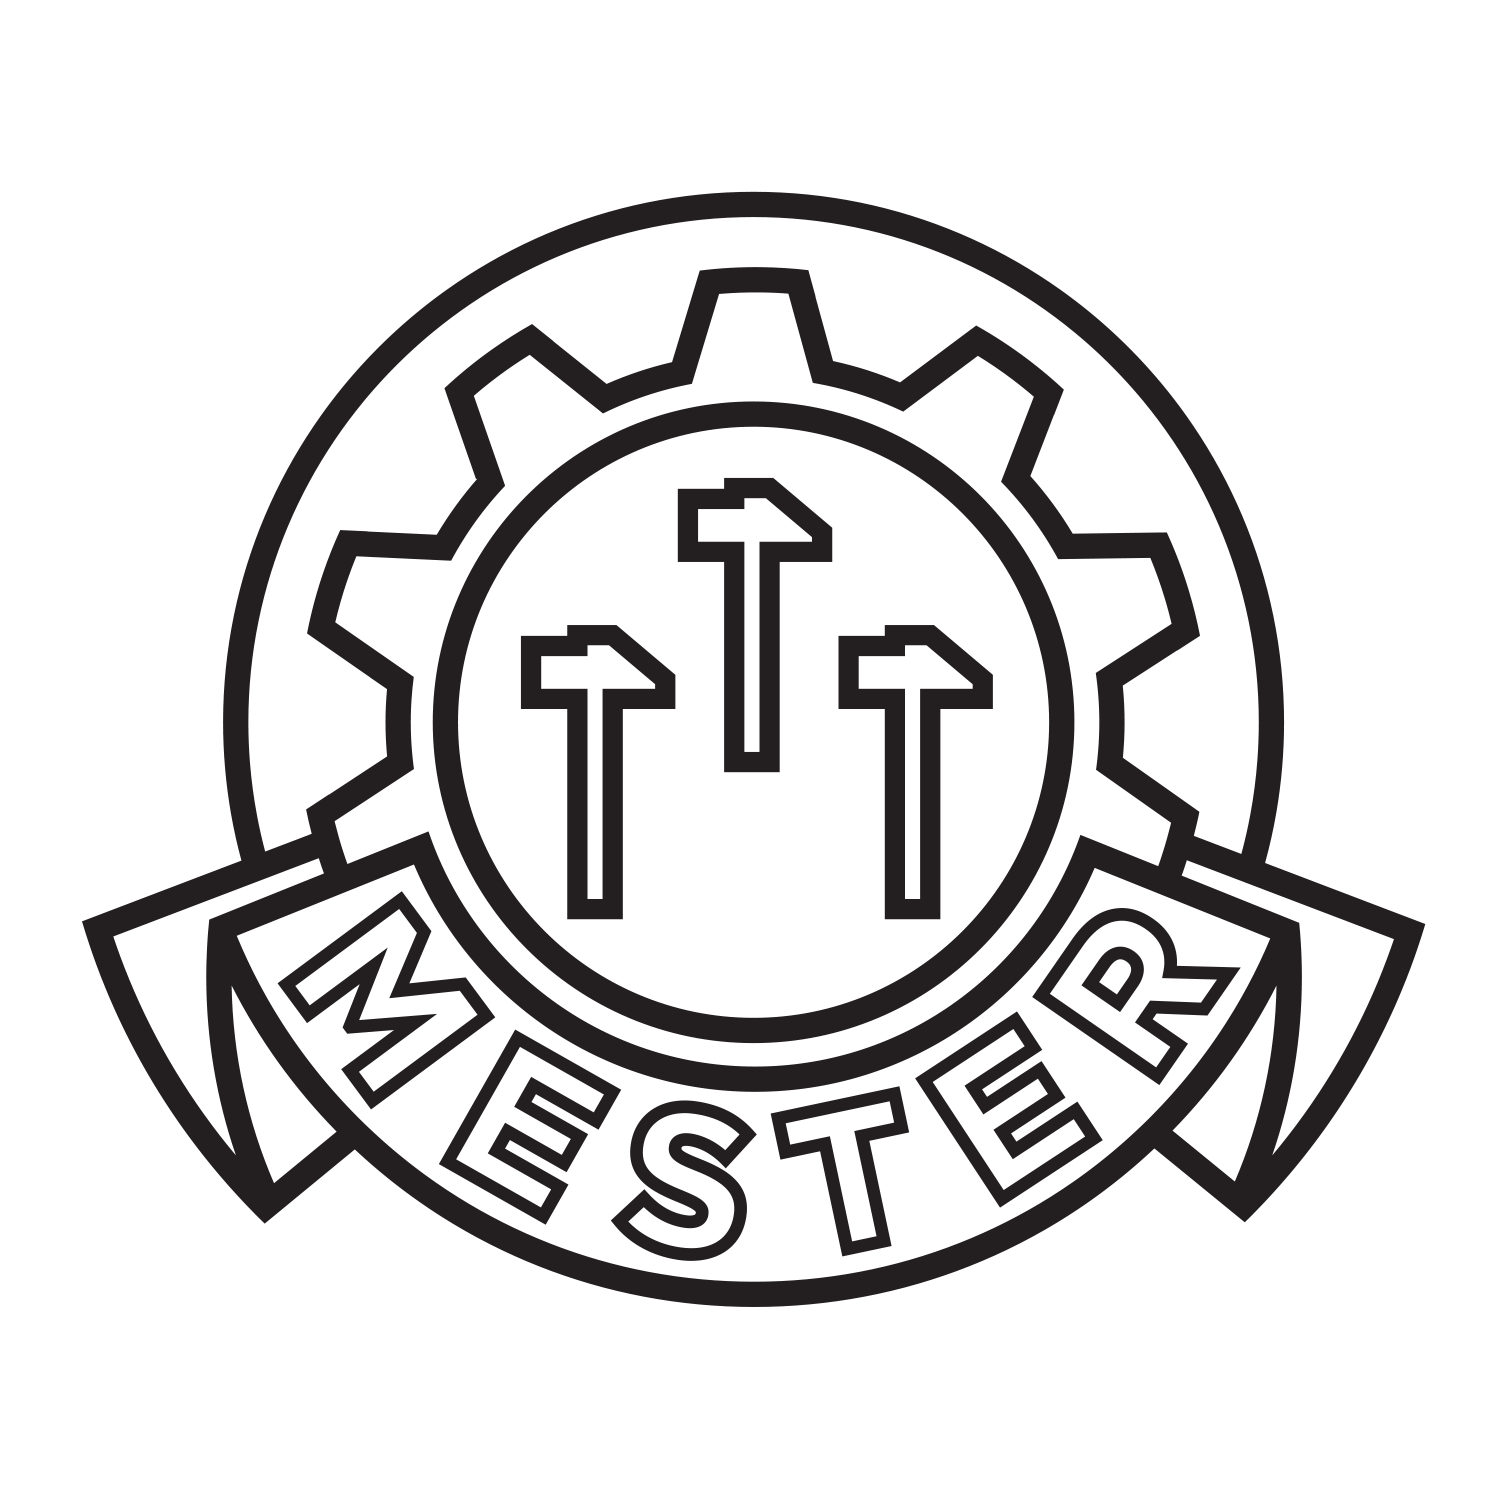 This shows an image of Mester logo.